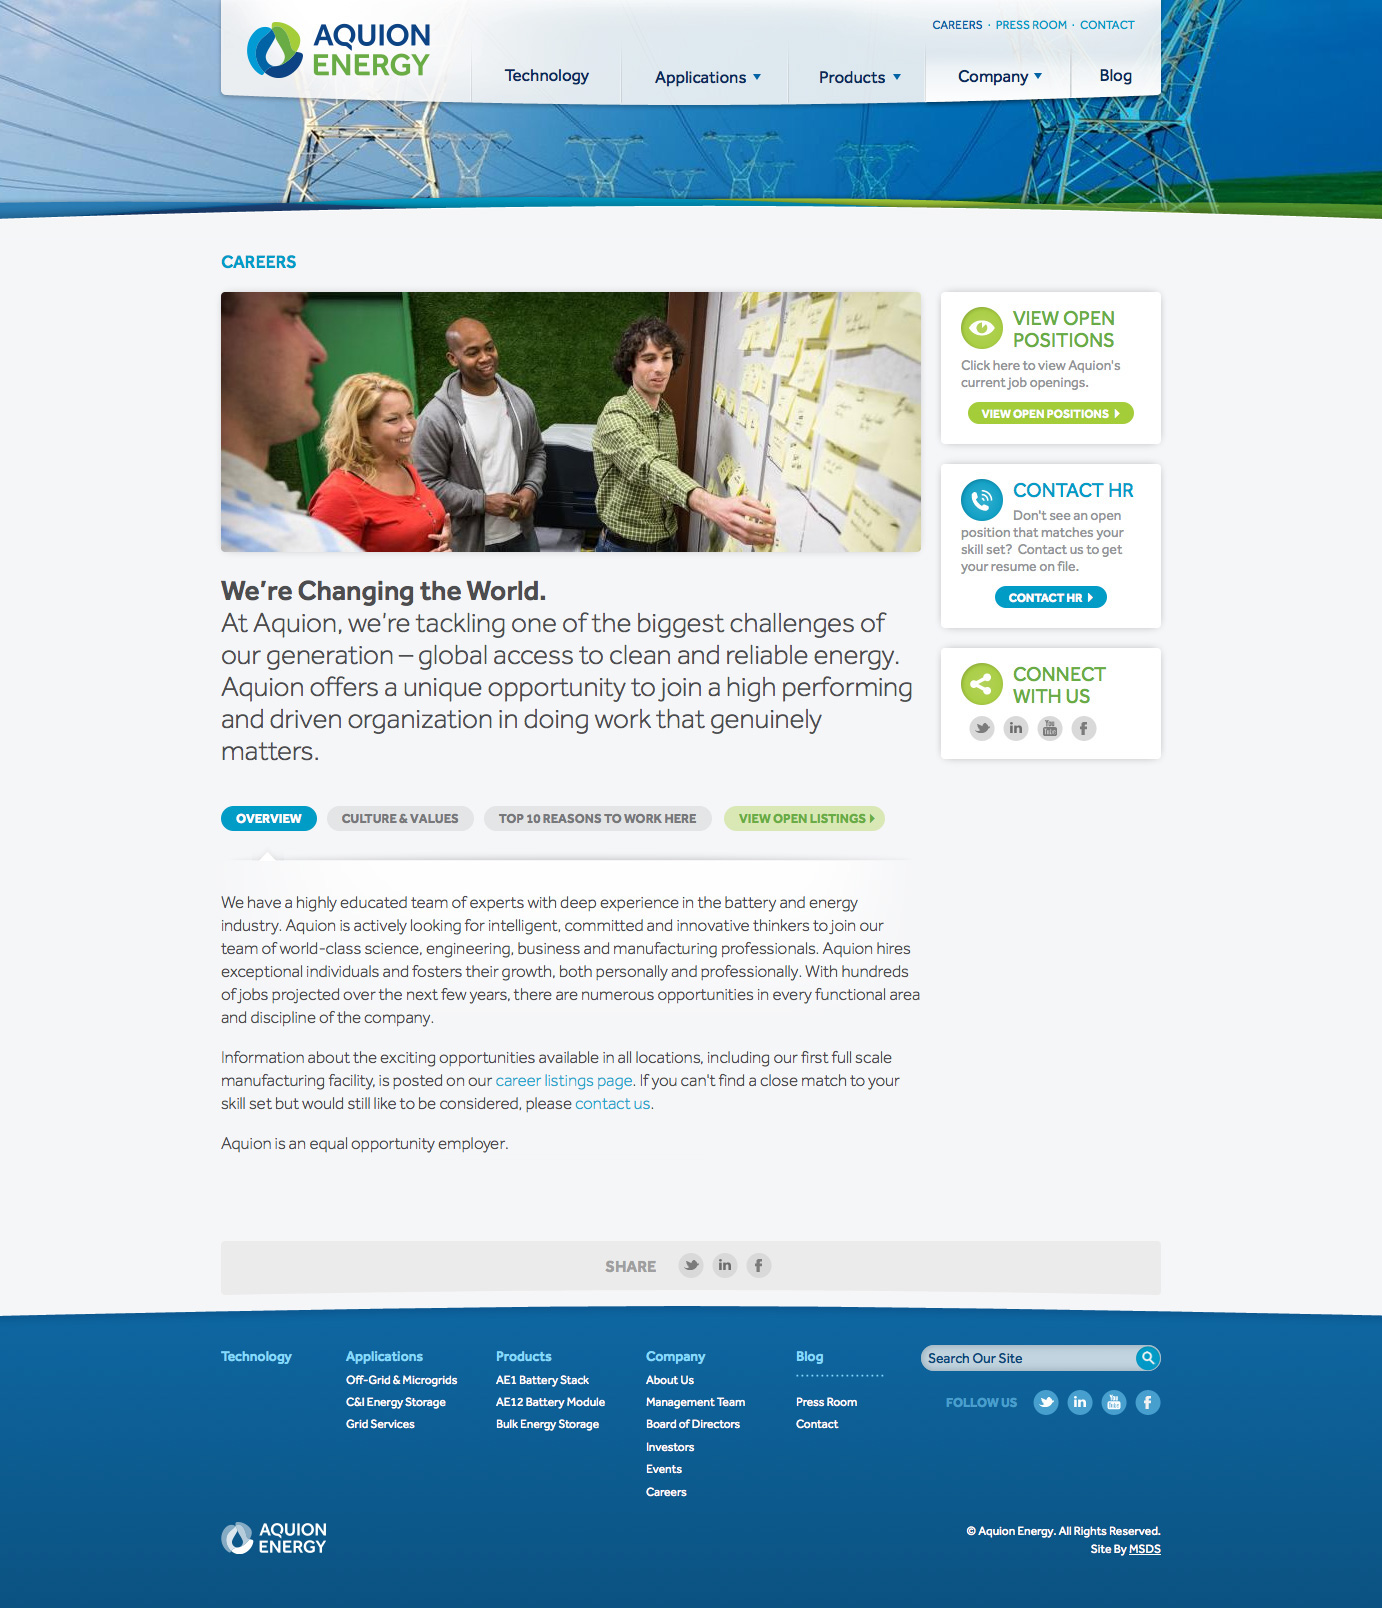 Aquion Energy Website and Branding on Behance